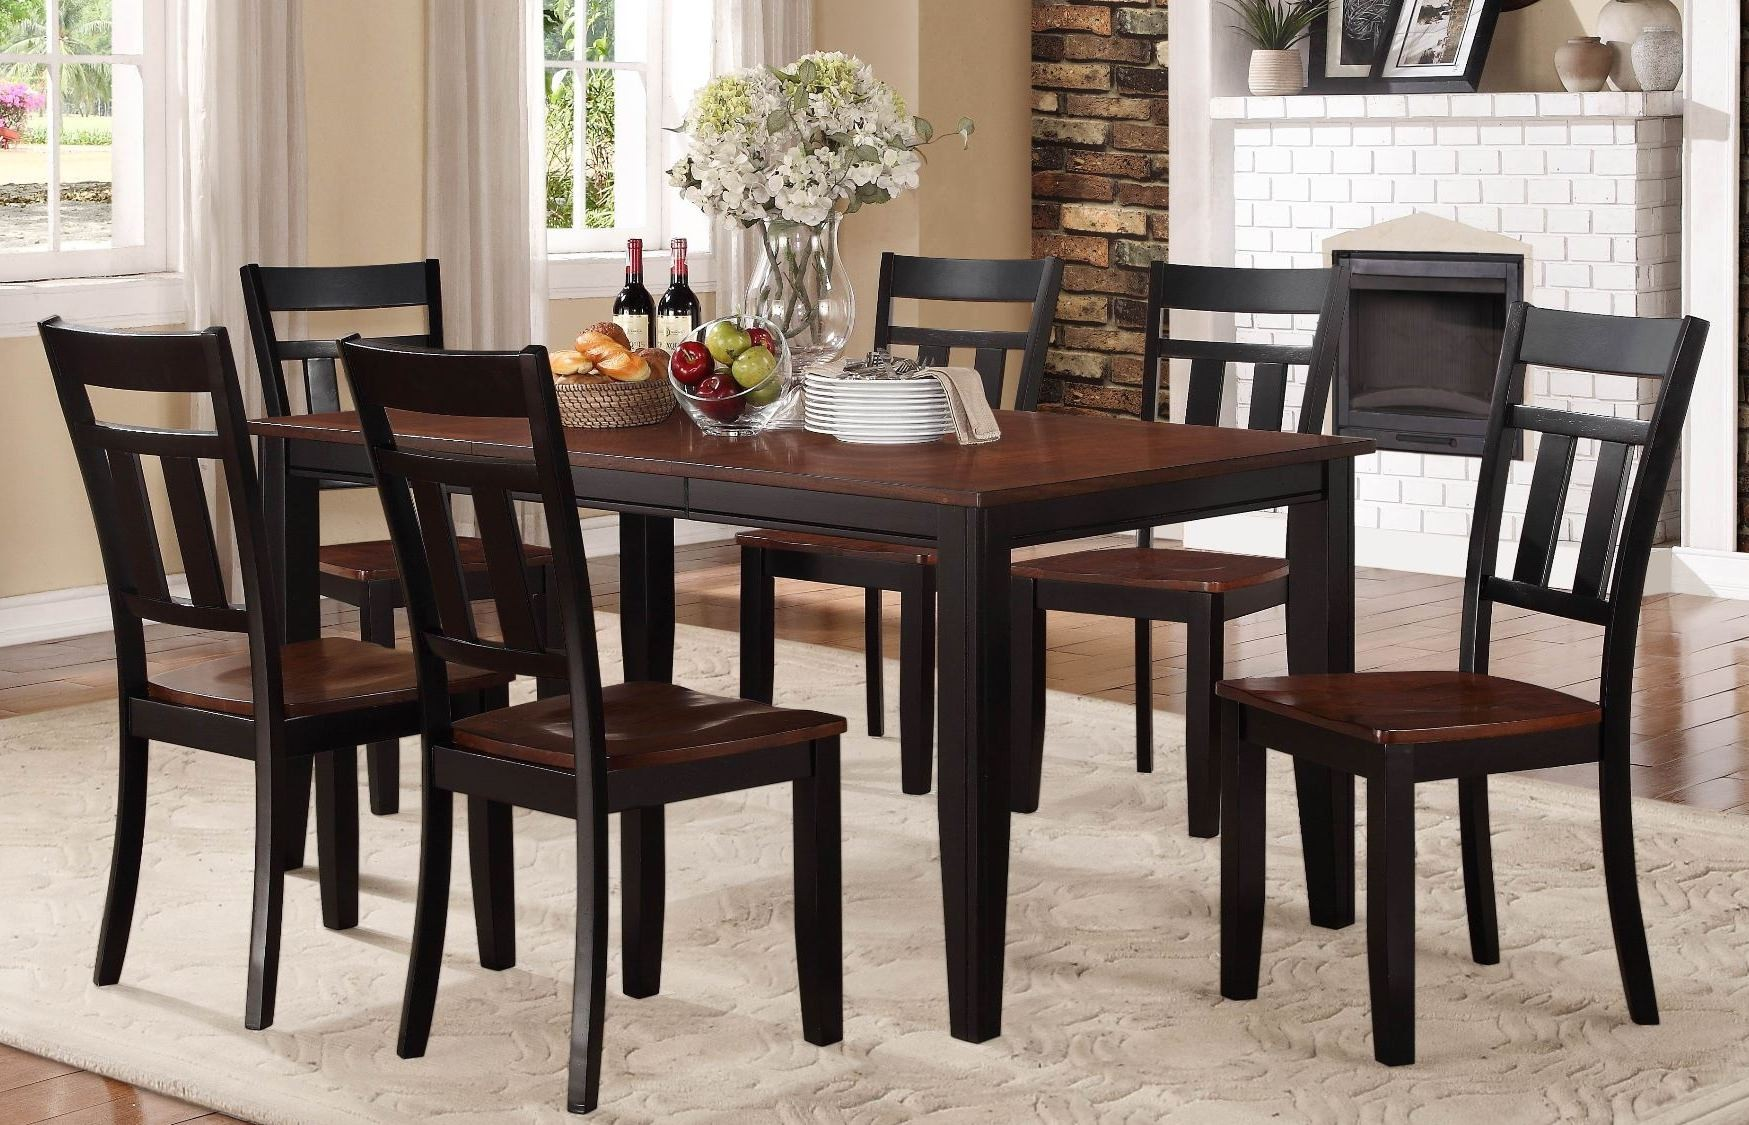 Westport Extendable Dining Room Set From Homelegance 5079BK 66 Coleman Fu